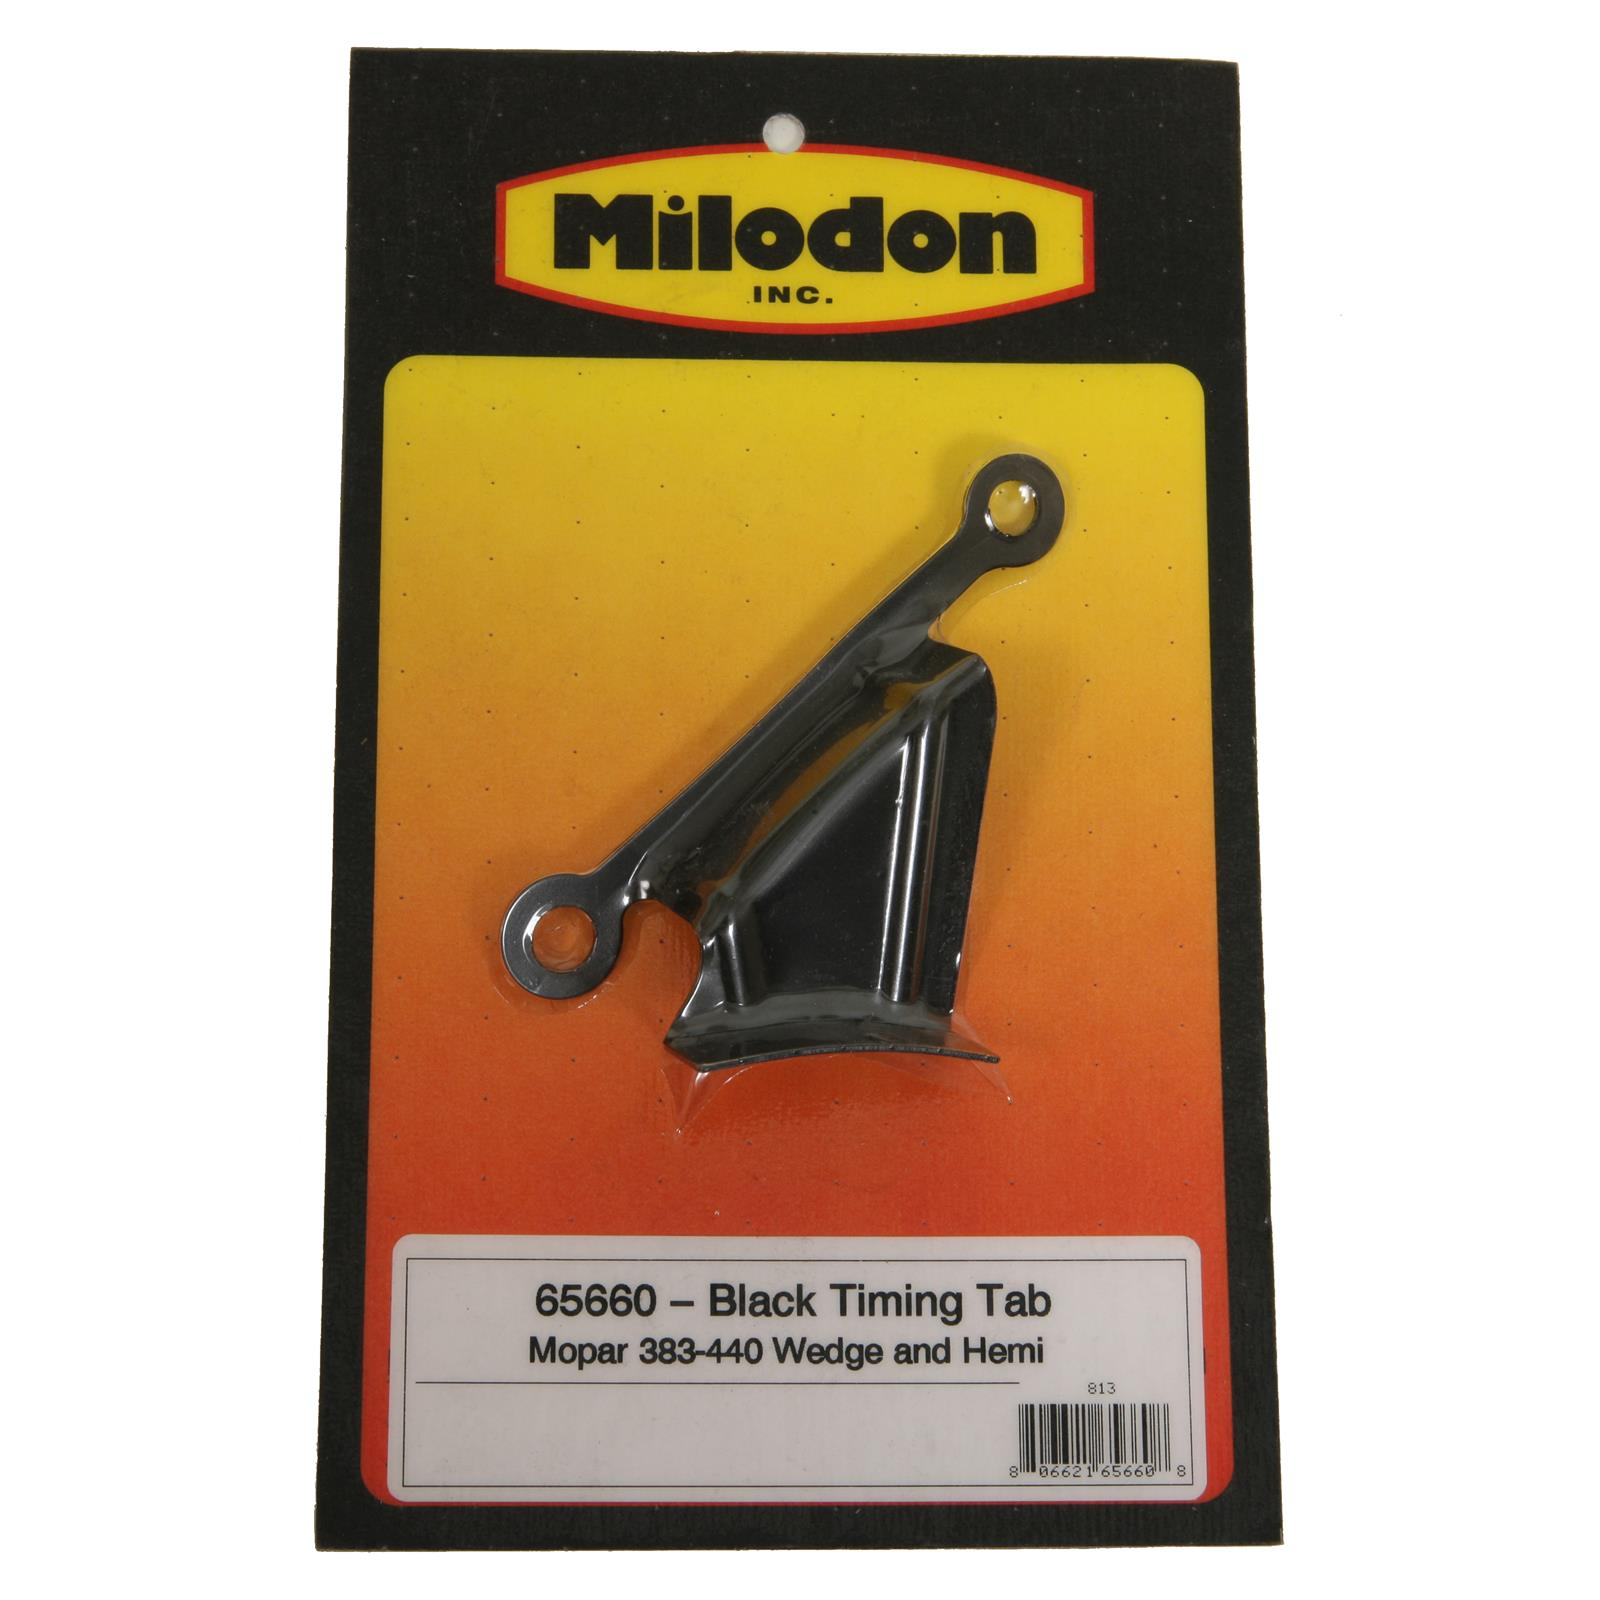 65660 Milodon Timing Tab For Use With Big Block Mopar Engines